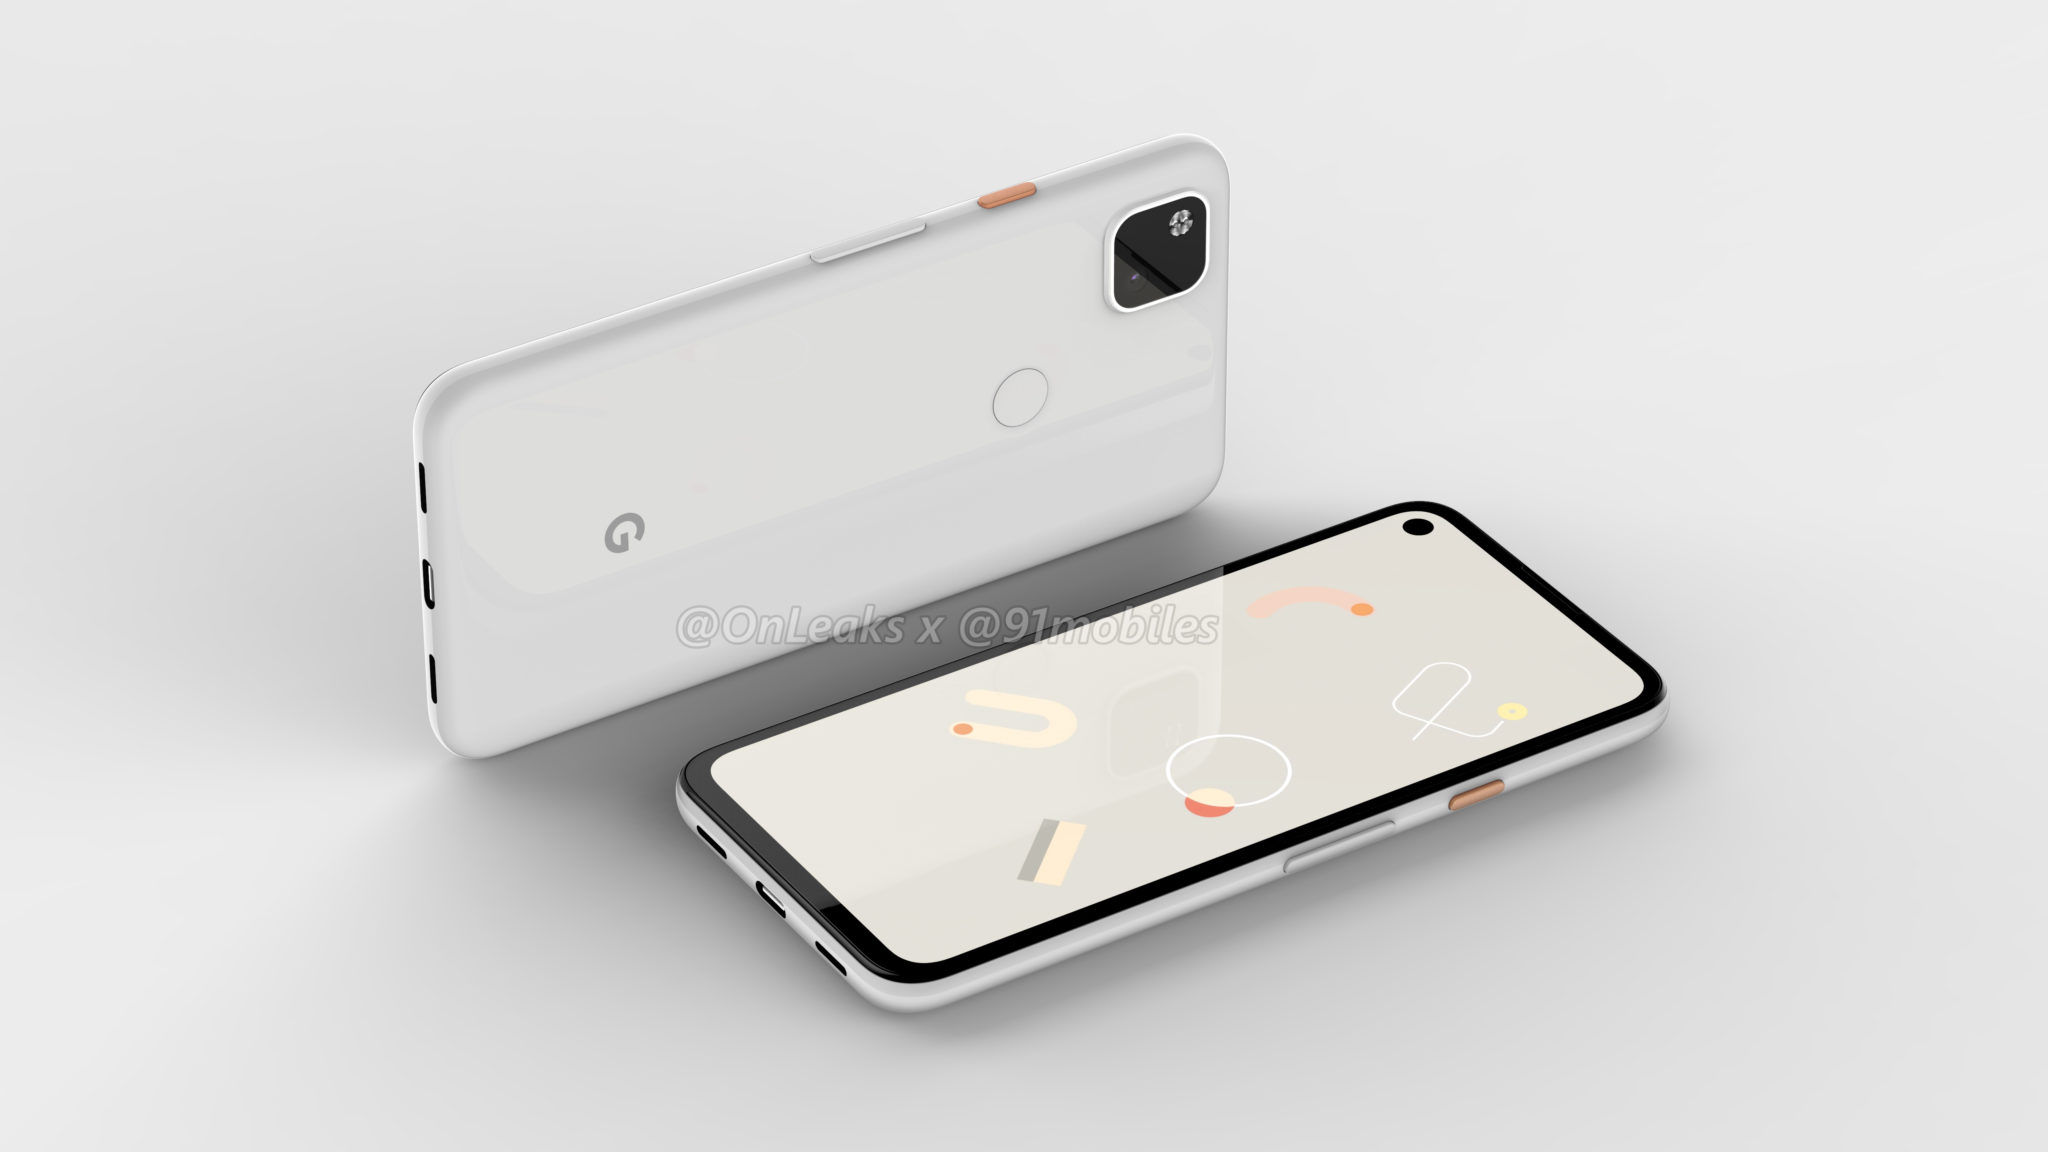 Code names may reveal some key Pixel 4a specs